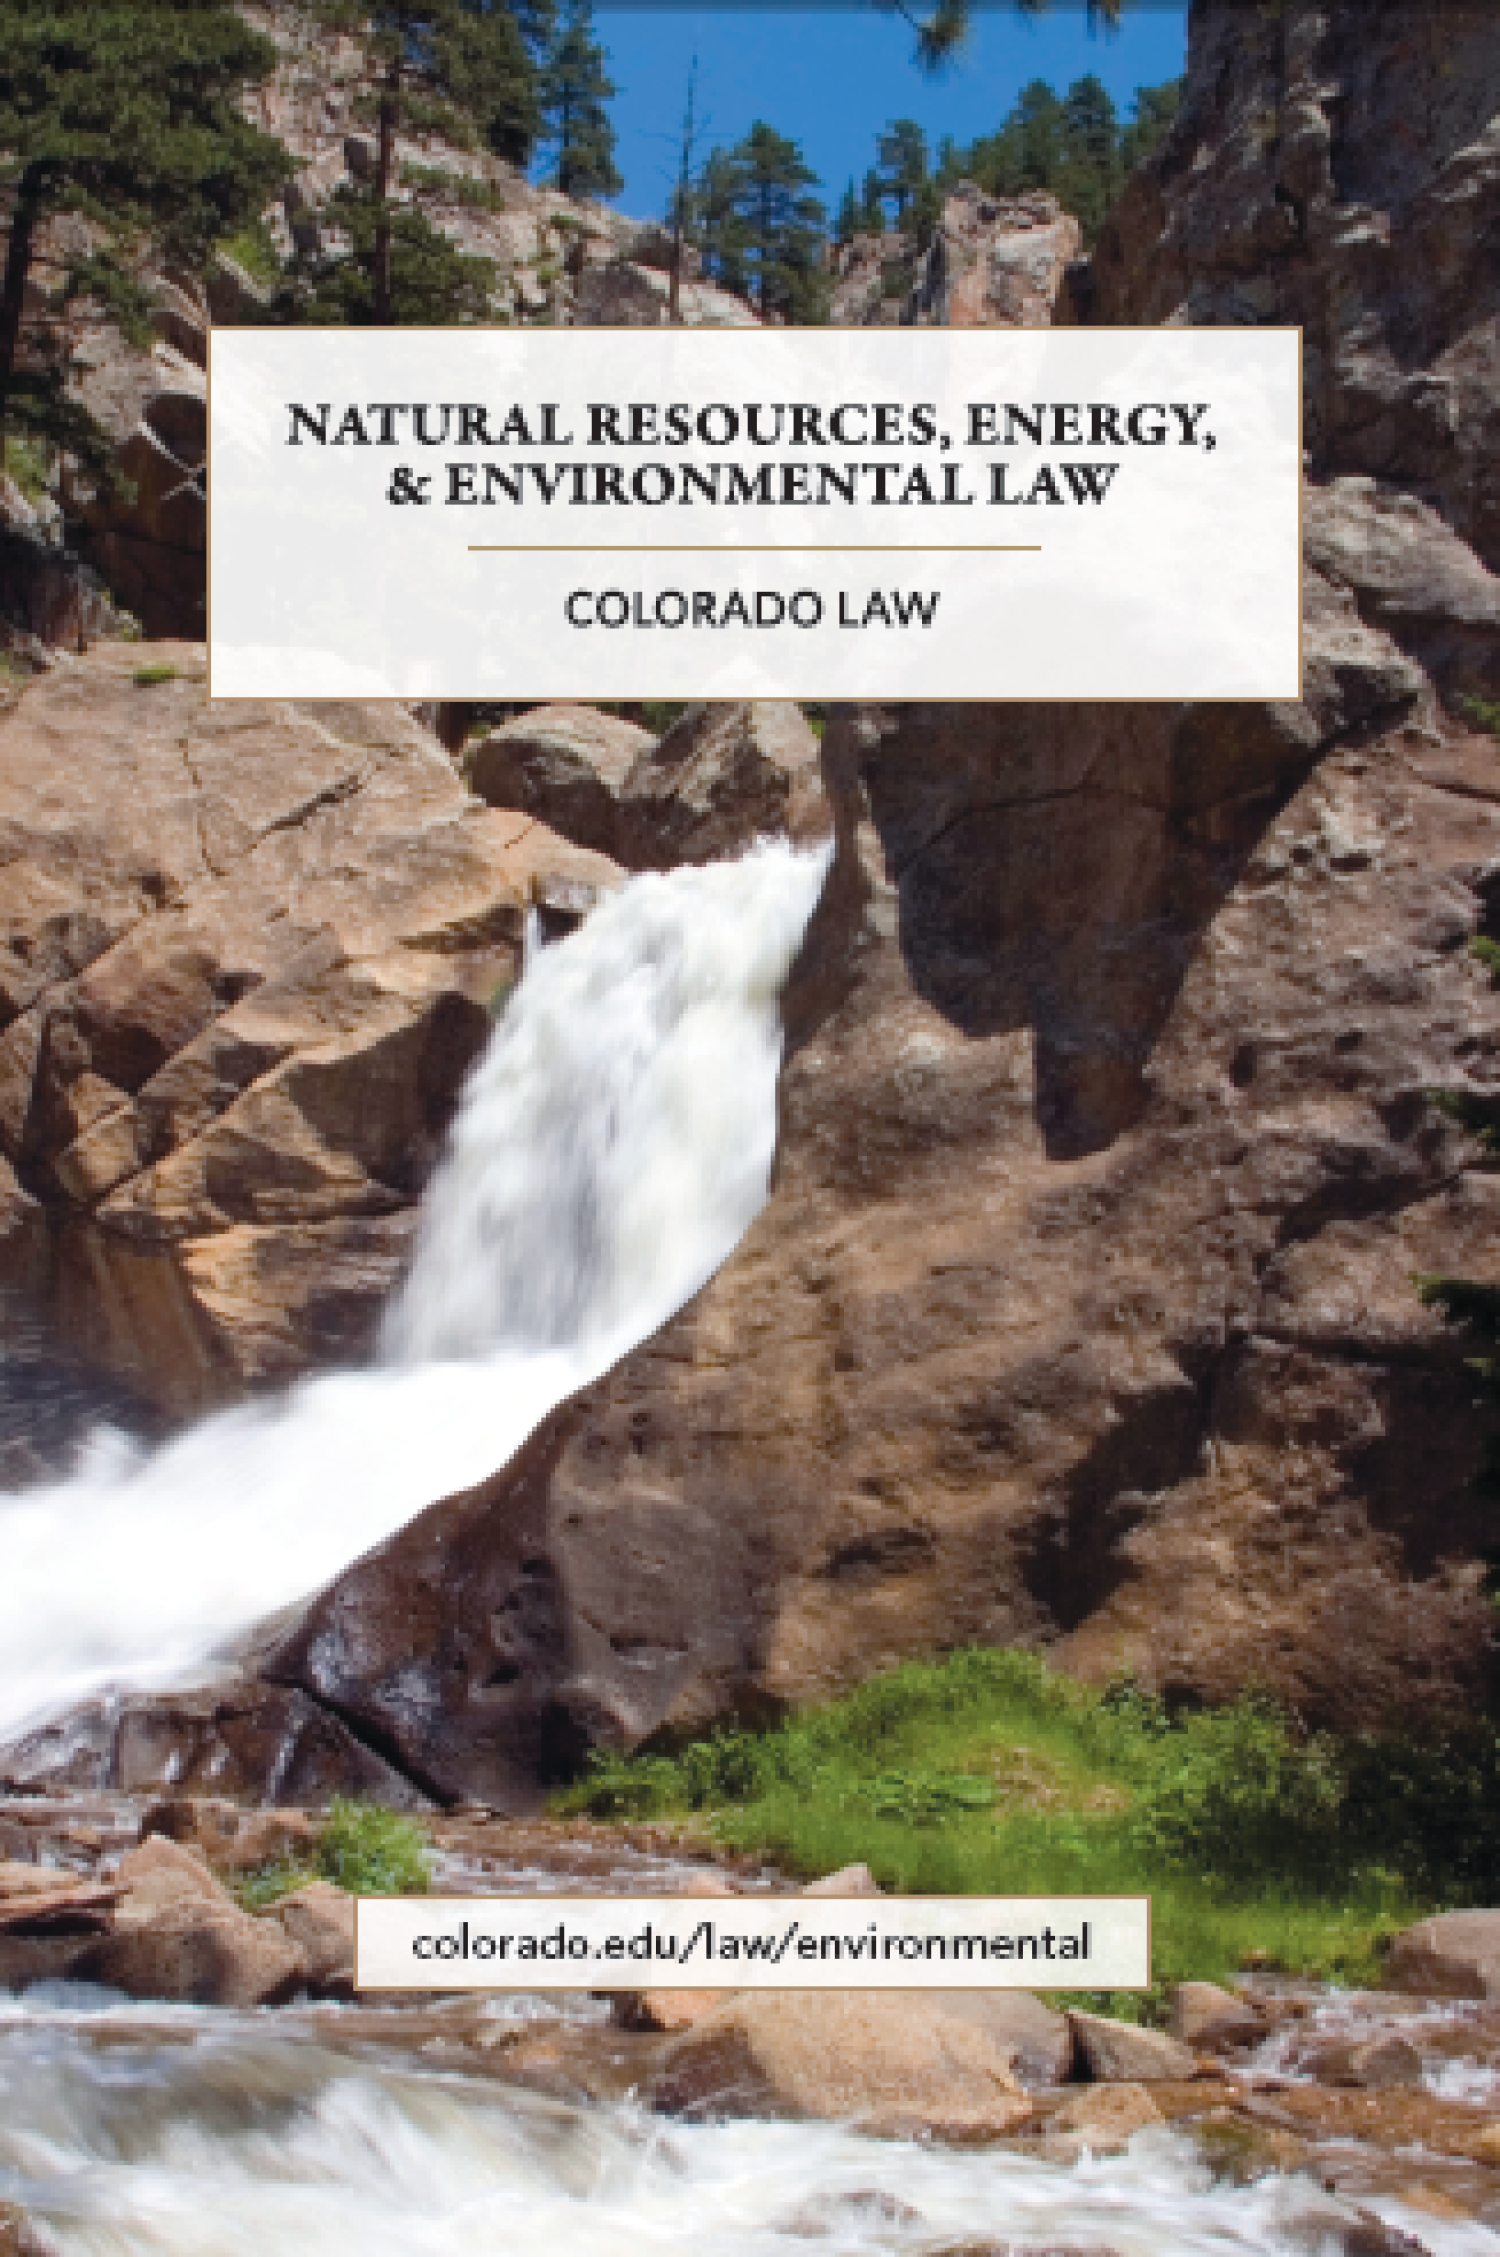 Natural Resources, Energy, & Environmental Law